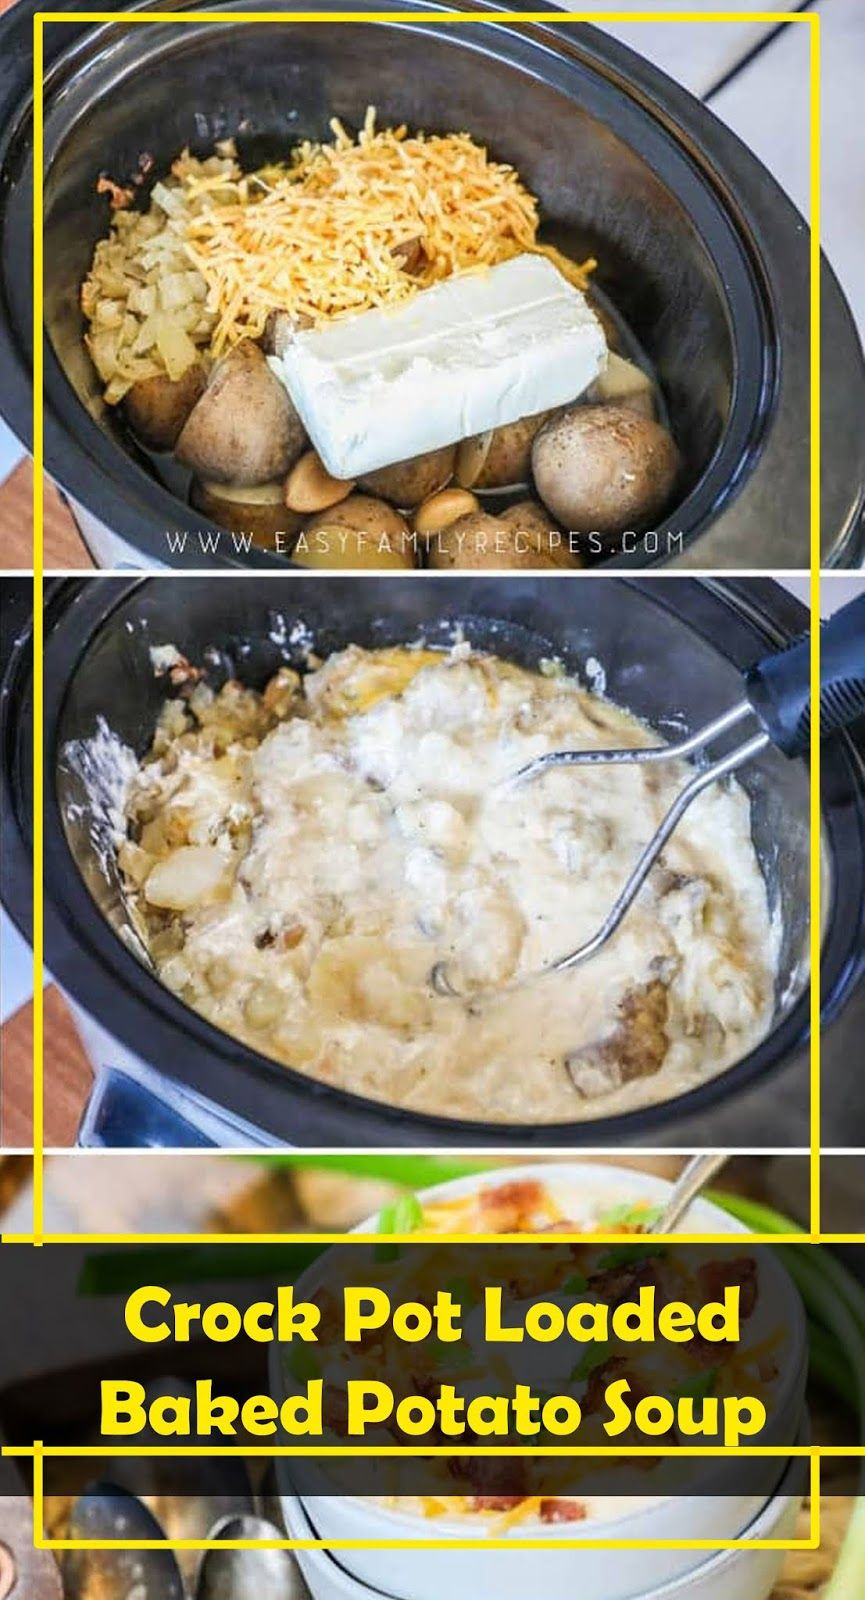 THE BEST Crock Pot Loaded Baked Potato Soup | Recipes #potatosoup